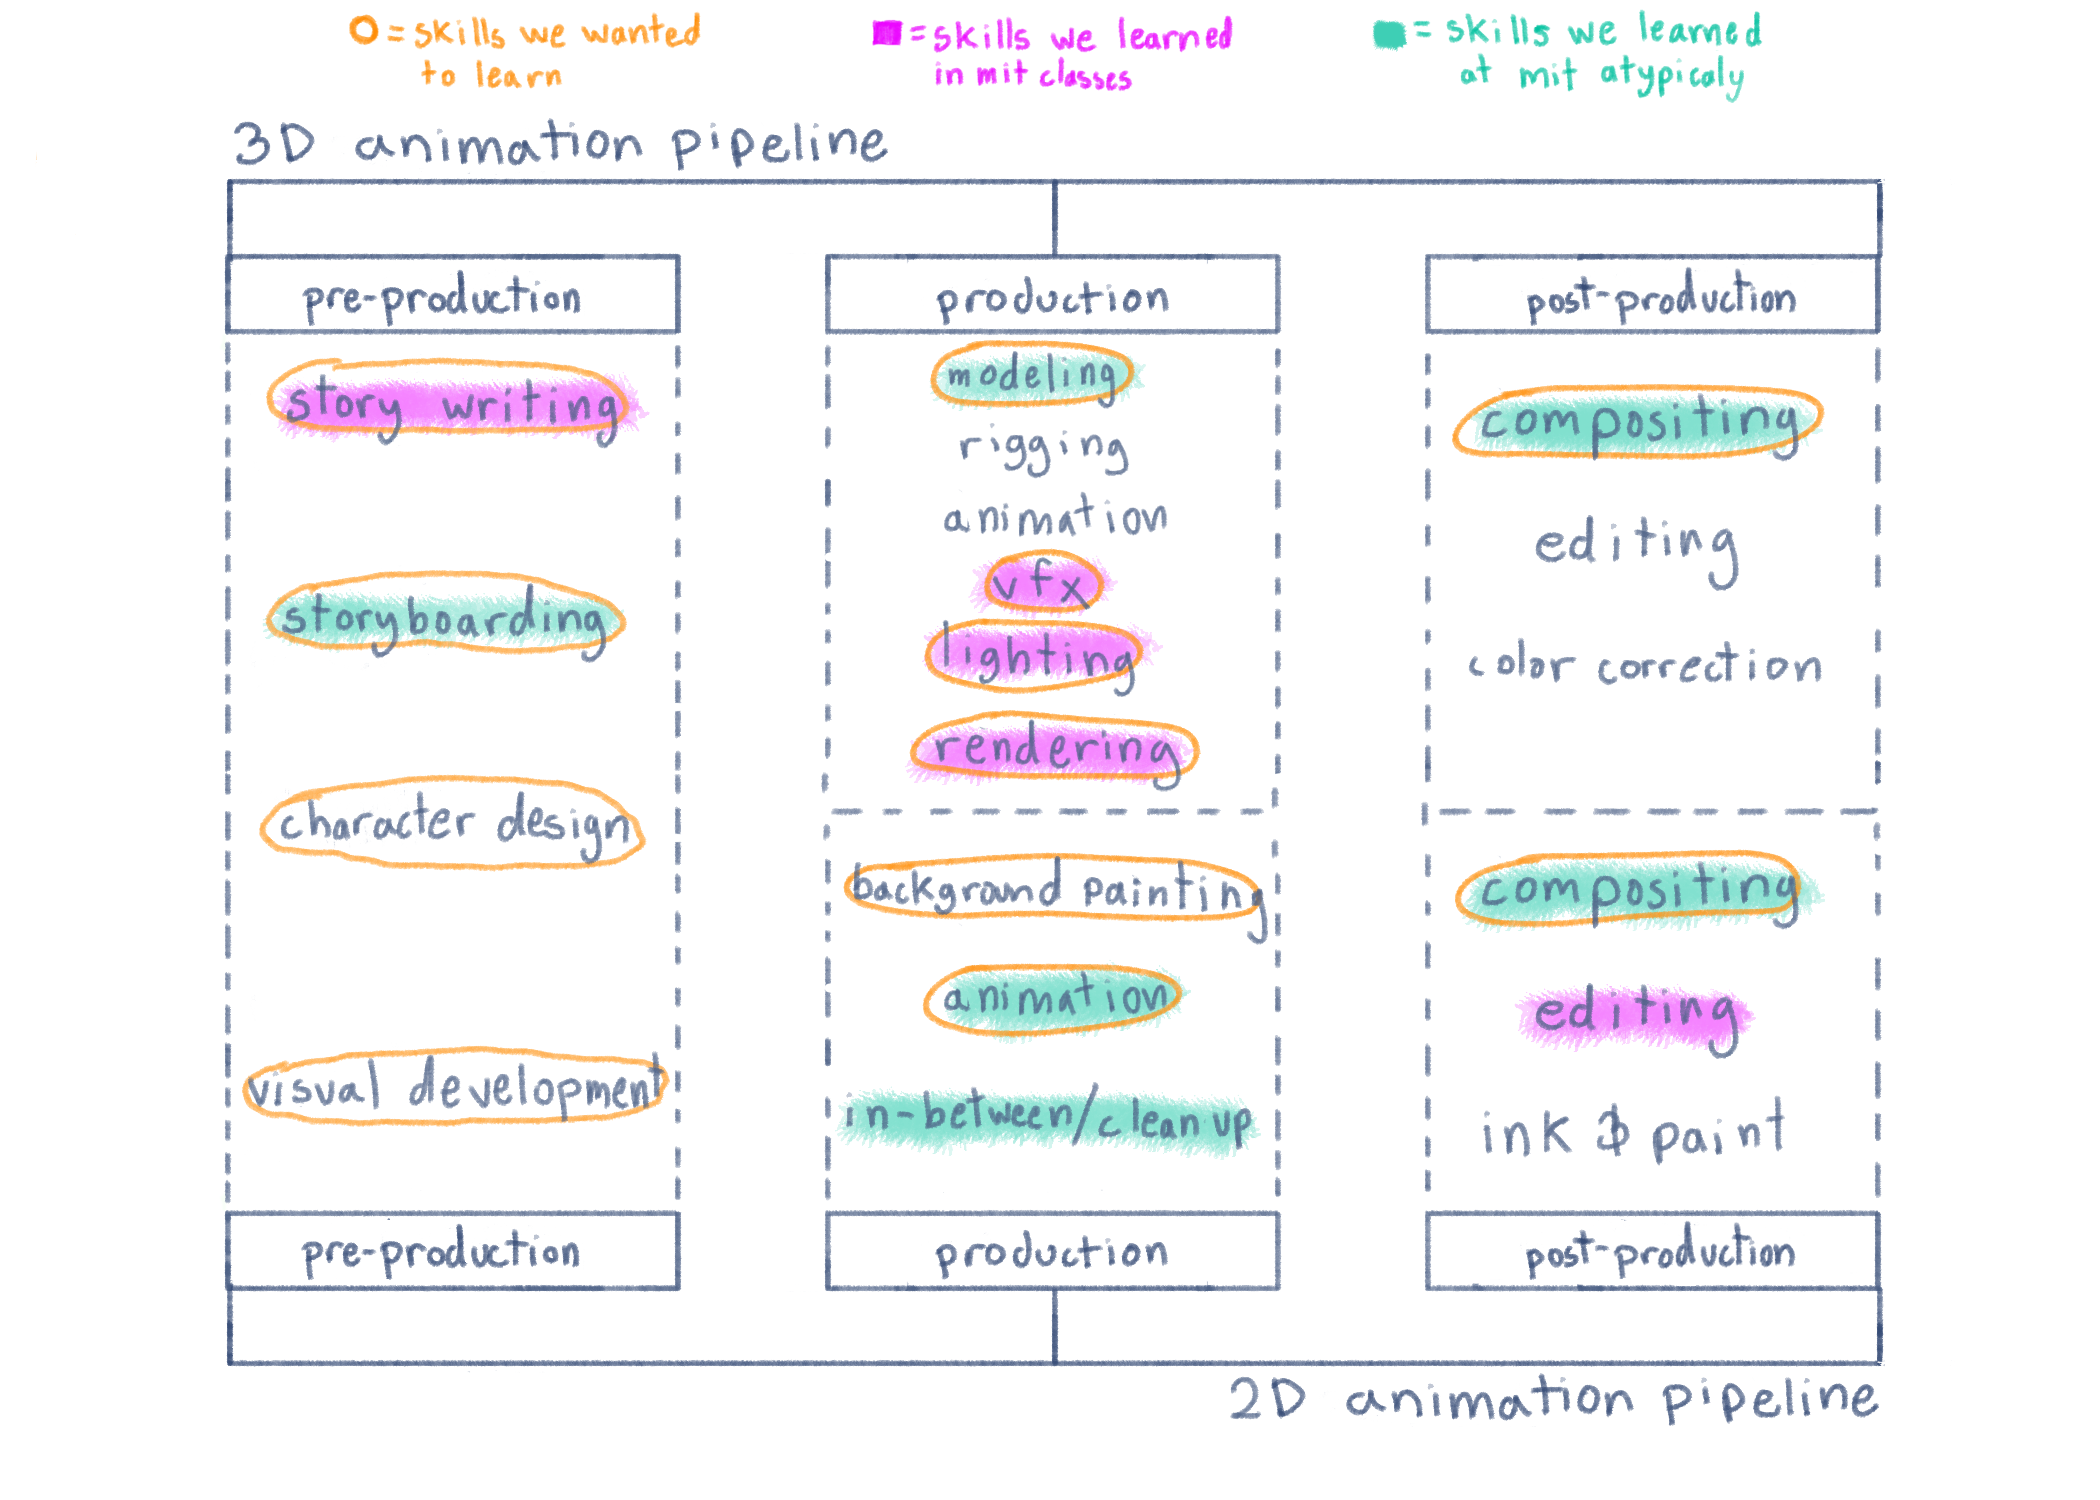 diagram showing the animation related skills we gained/did not gain at mit